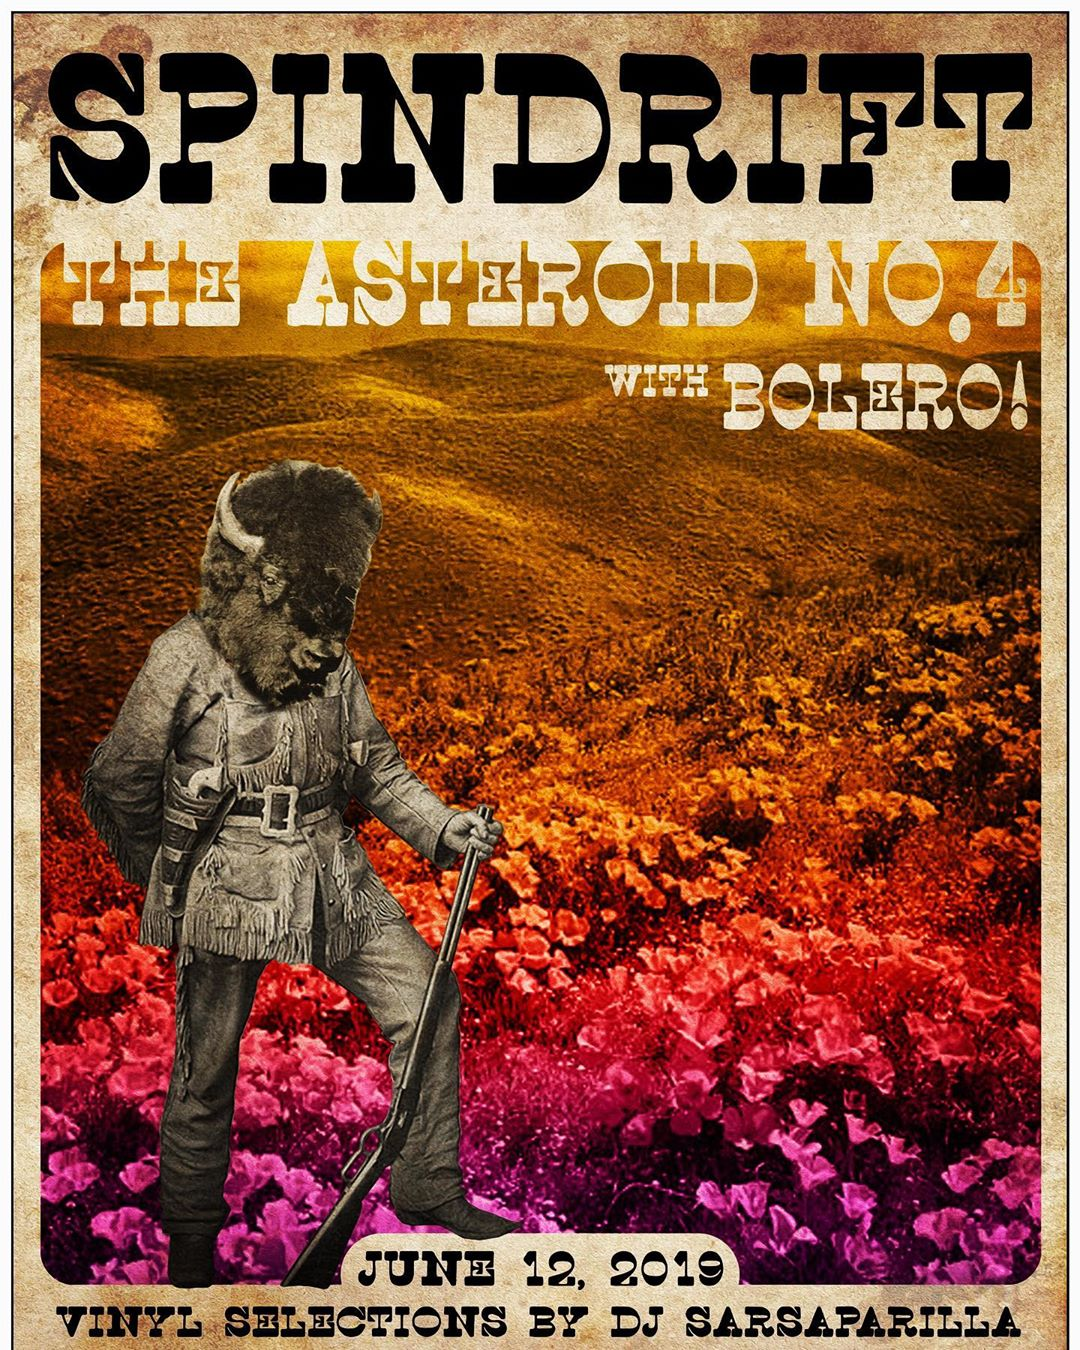 @thechapelsf return to SF! 06.12.19 With our best buds @theasteroidno4 & @bolero.sfc • Songs from the Ancient Age is now remastered on limited edition colored vinyl! We'll have them at the show! Or get it spindriftla.bandcamp.com @littlecloudrecords #spindrift #sanfran #remastered #eastmeetswest #psychrock